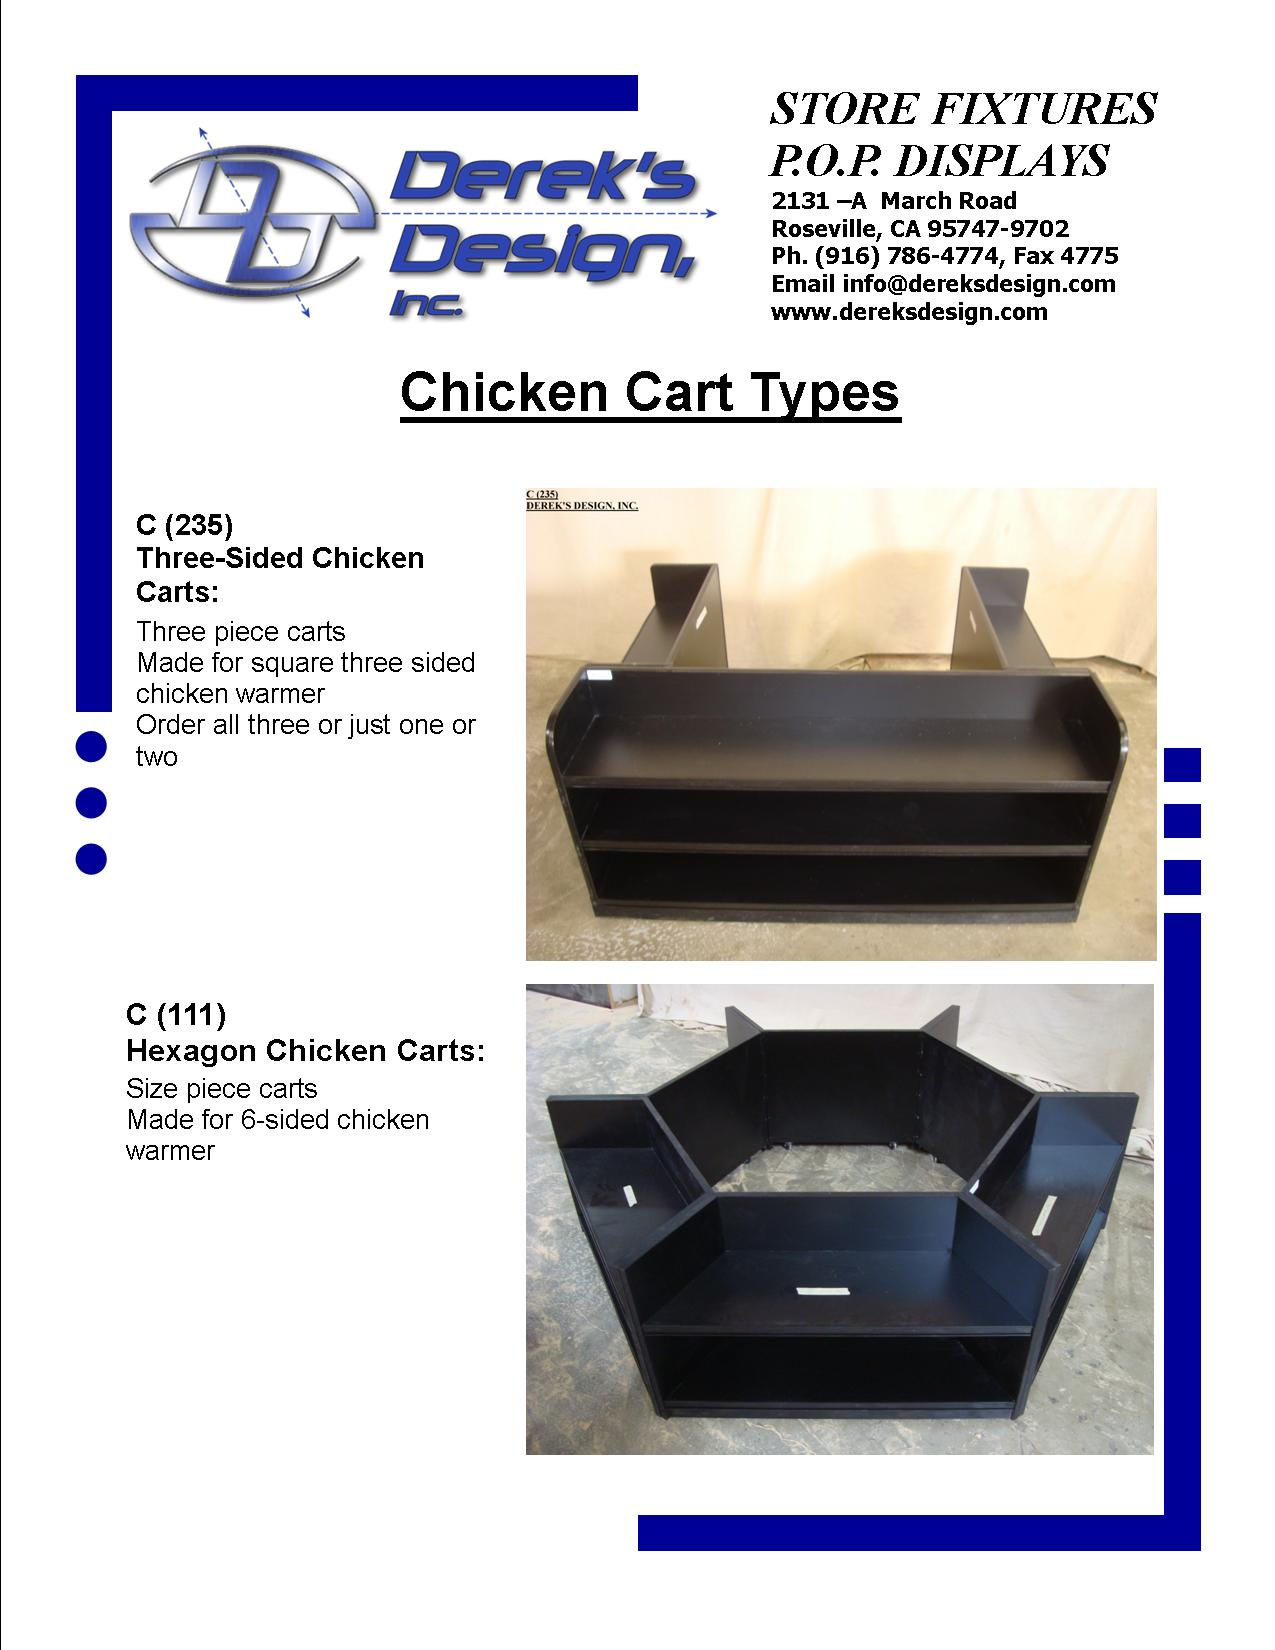 "<a href=""mailto:orders@dereksdesign.com?subject=Chicken%20Cart%20Types&body=http://www.dereksdesign.com/gallery/carts-bunkers/chicken-cart-types/"">Click here for inquiry </a>"